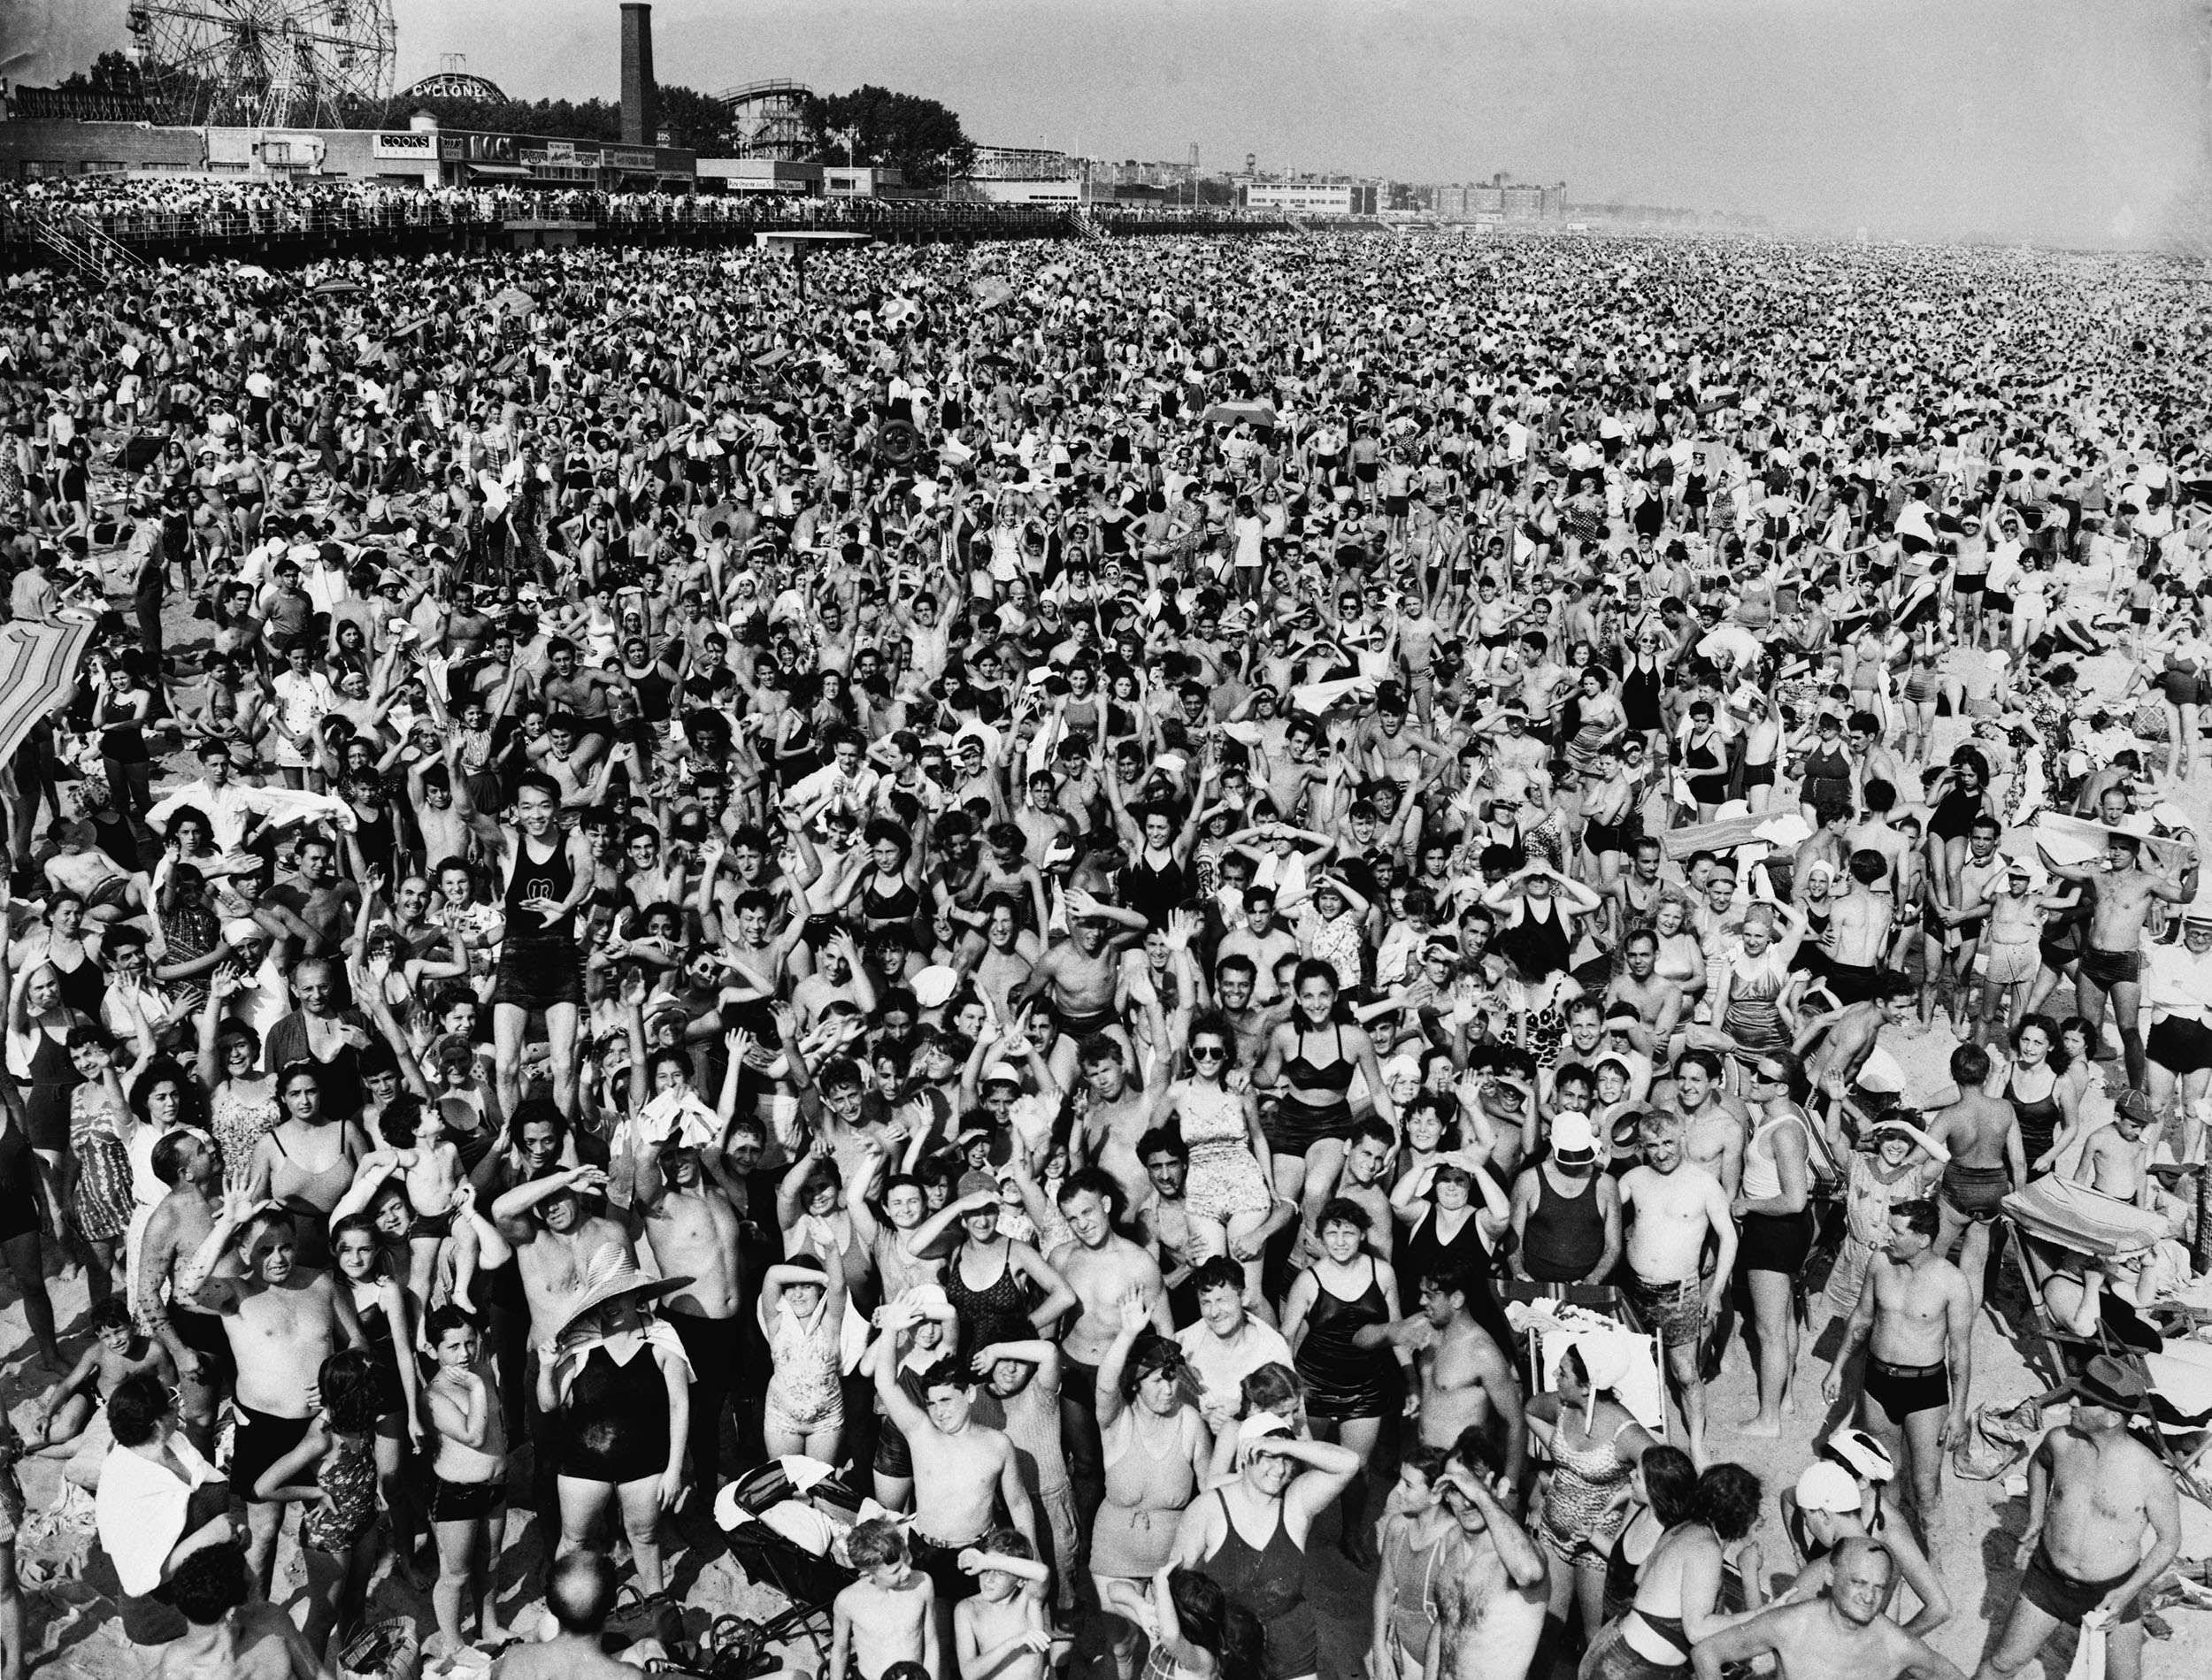 Coney Island on a quiet Sunday afternoon a crowd of over a MILLION